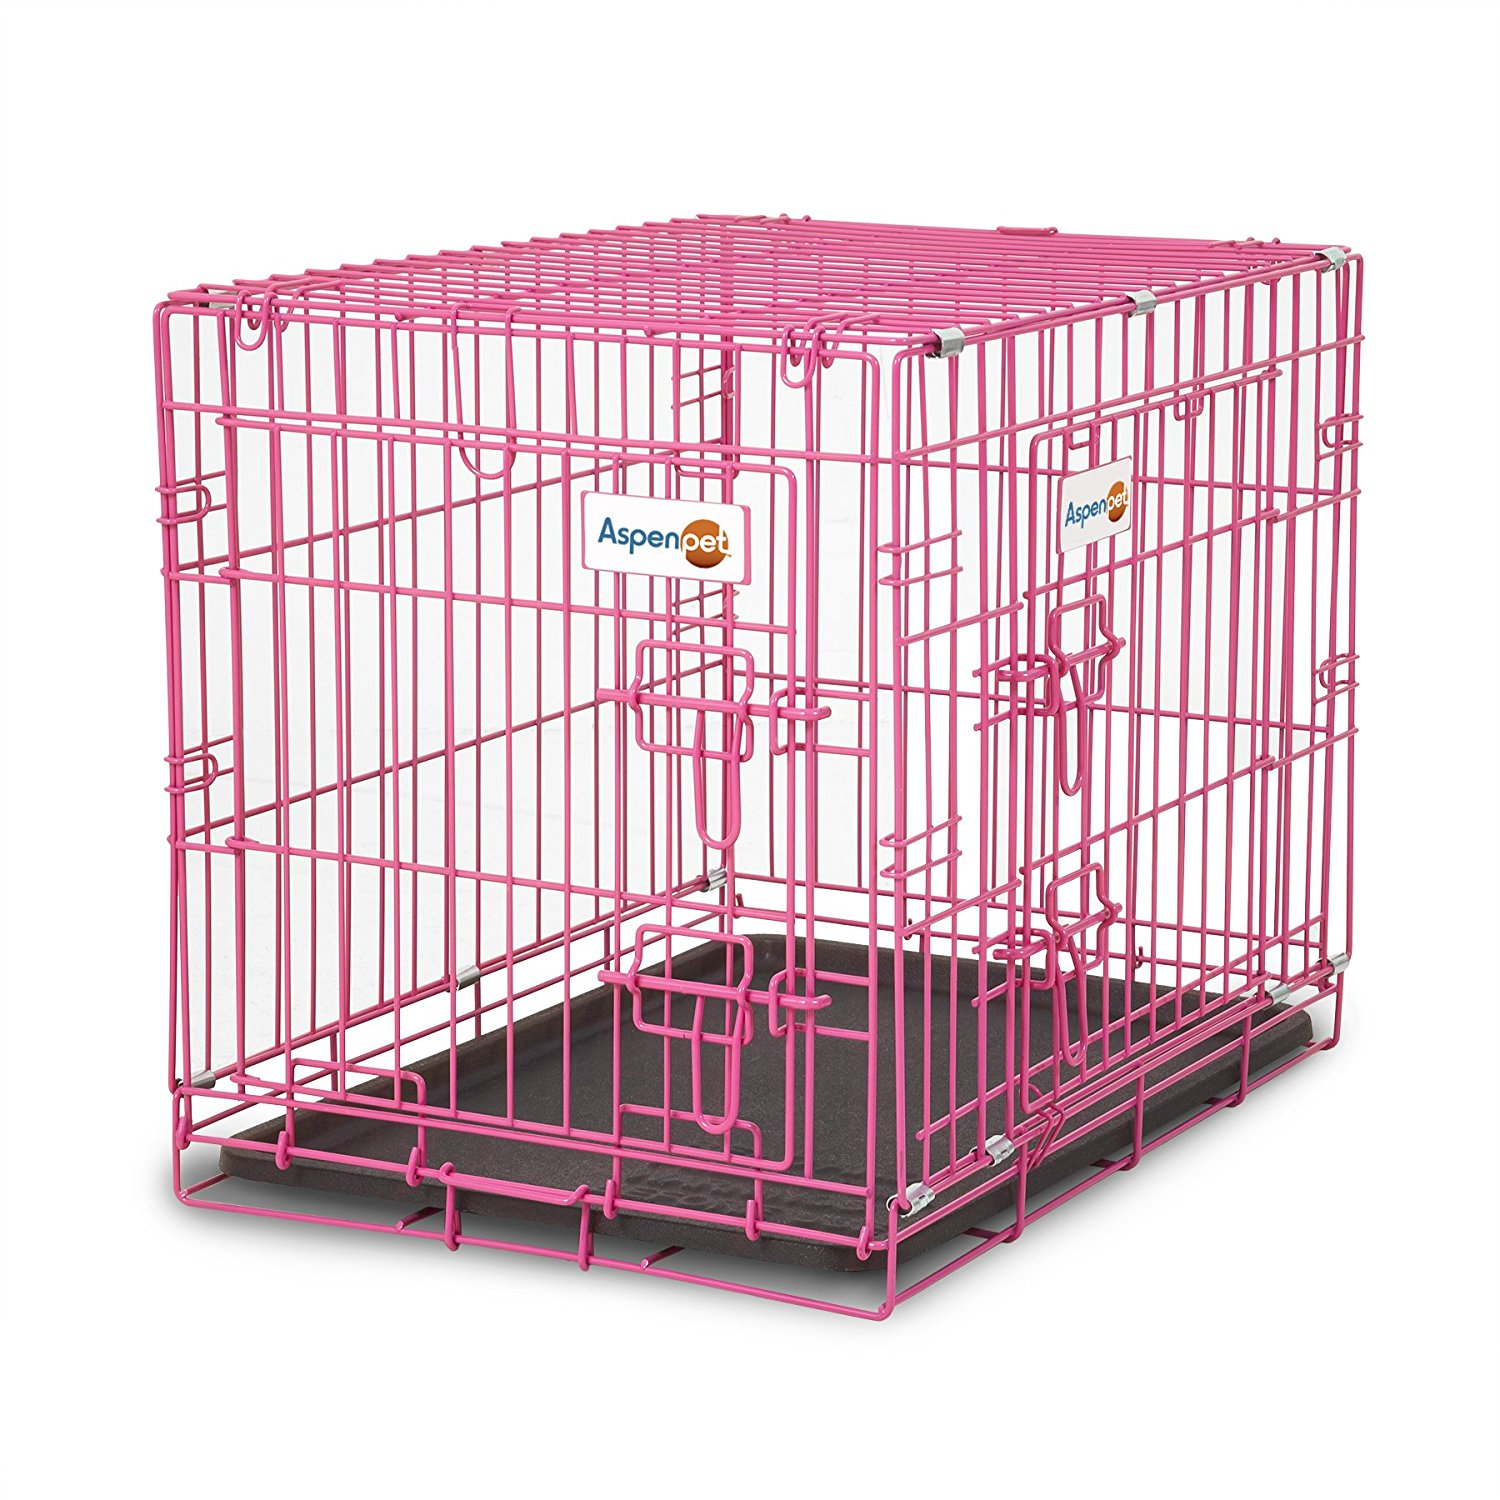 The Perfect Pink Dog Crate | All Pet Cages - photo#5